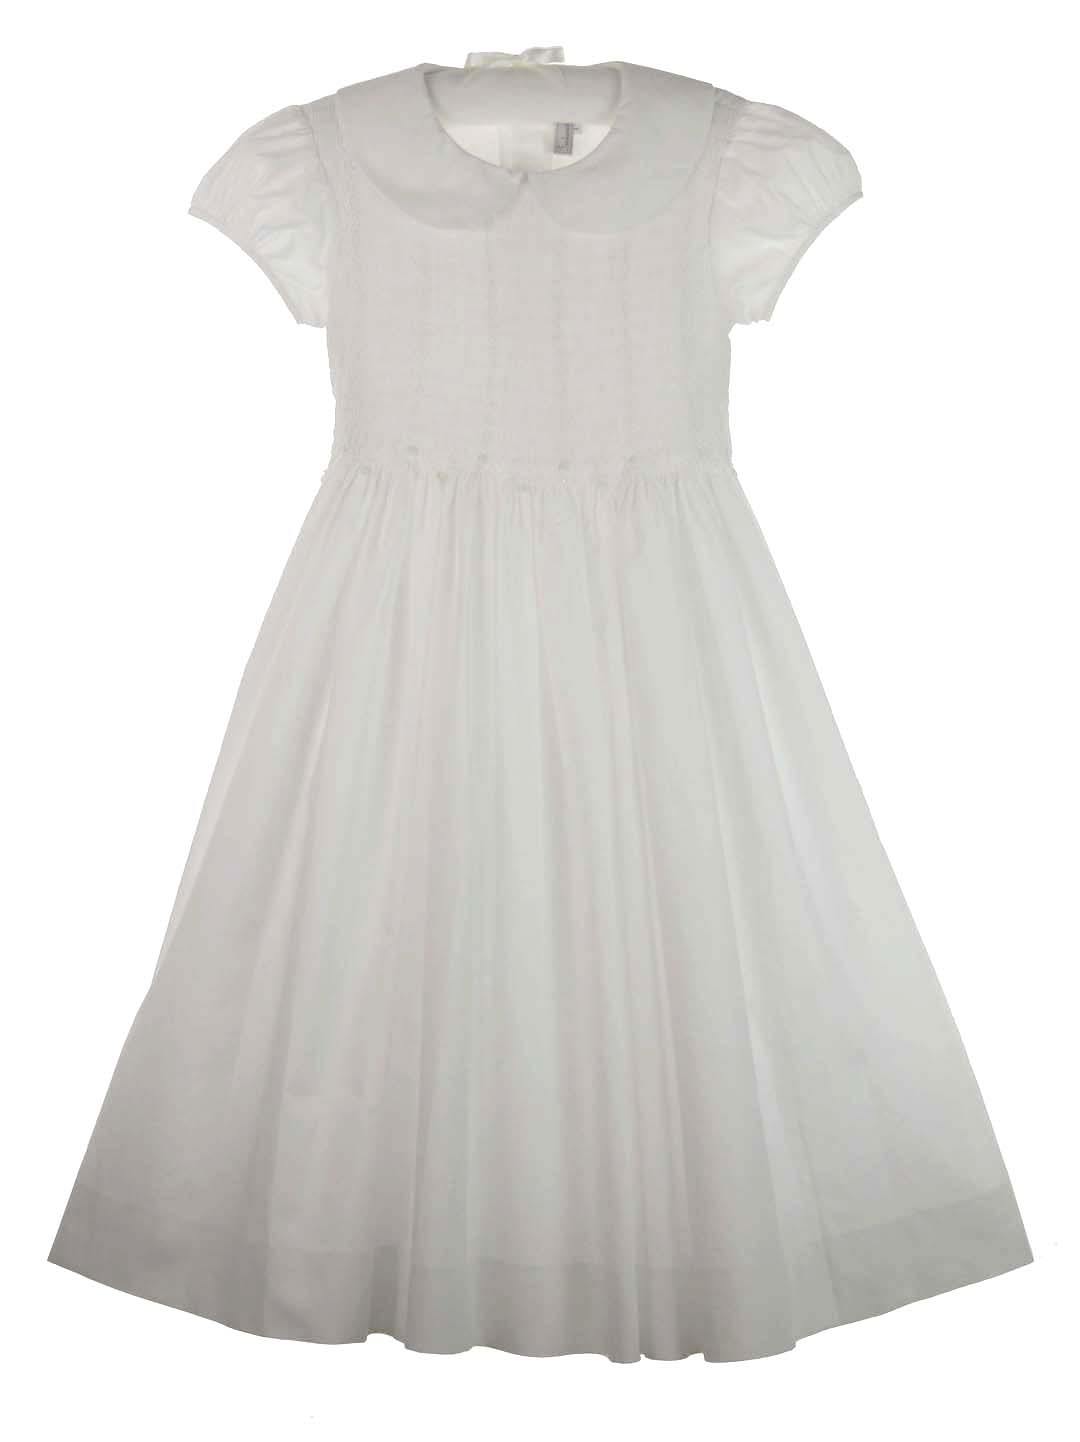 Fantaisie,Fantaisie Kids,girls white cotton dress,white cotton ...